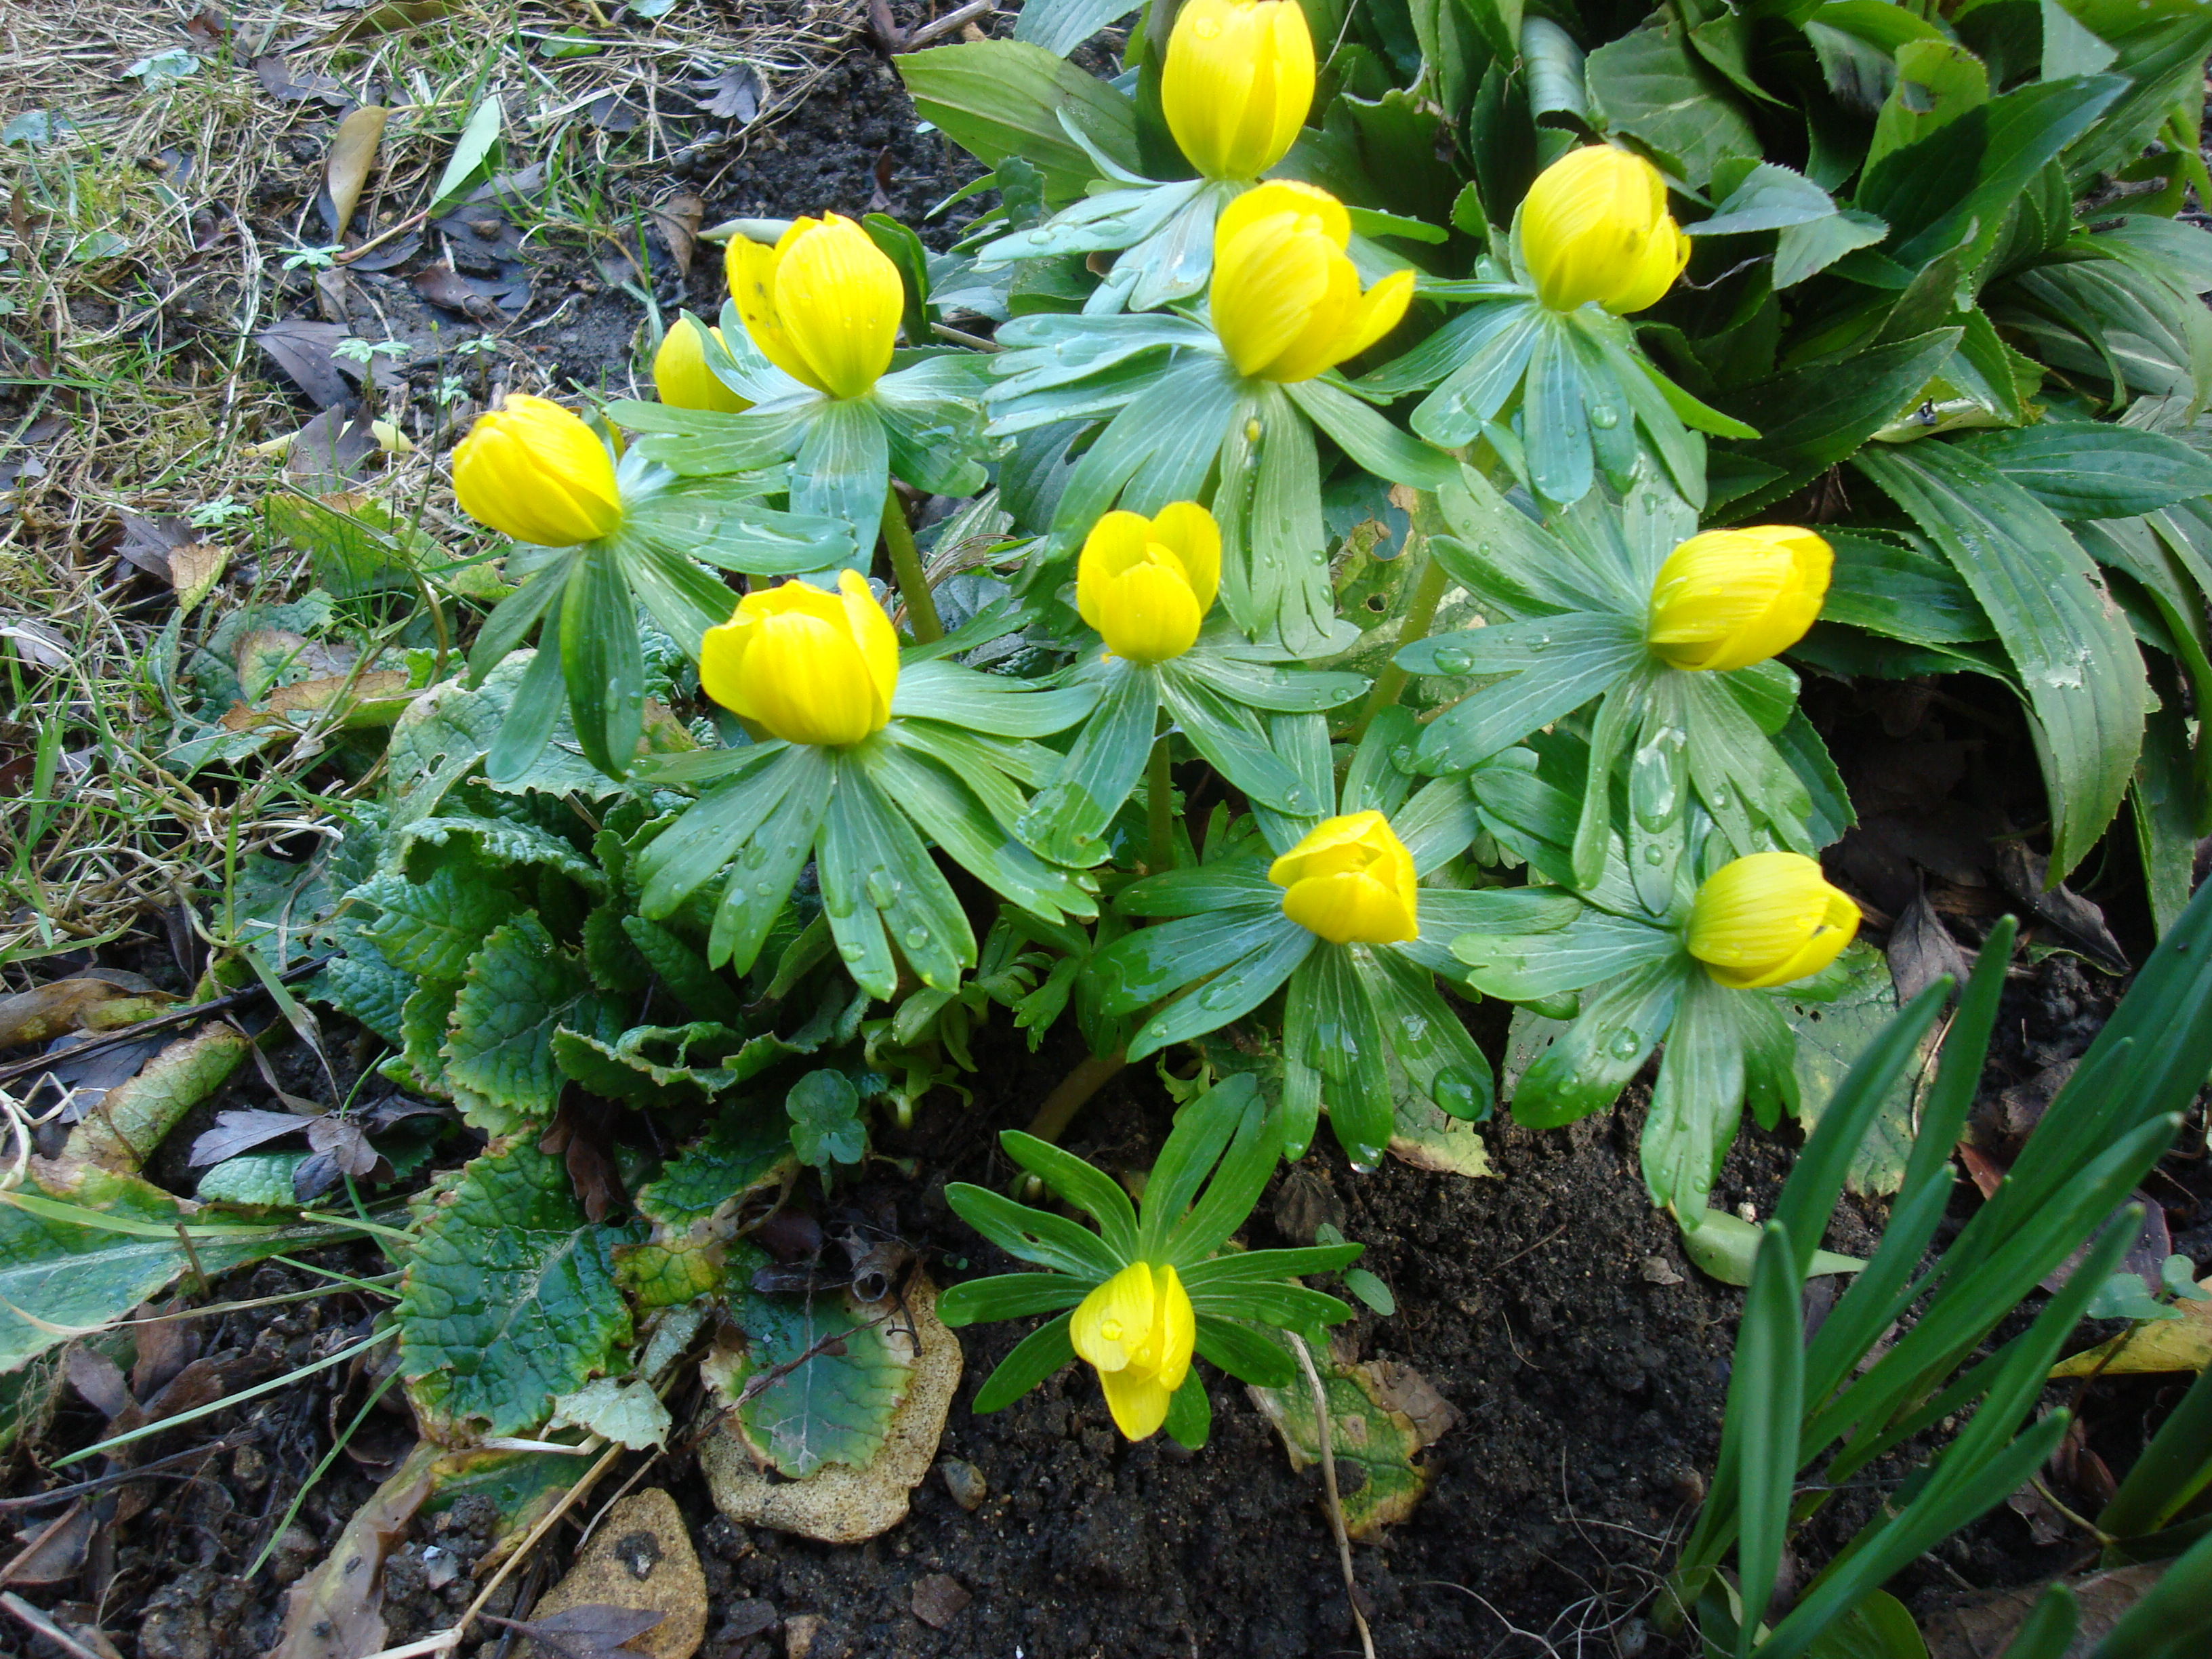 Eranthis hyemale, the Winter aconite